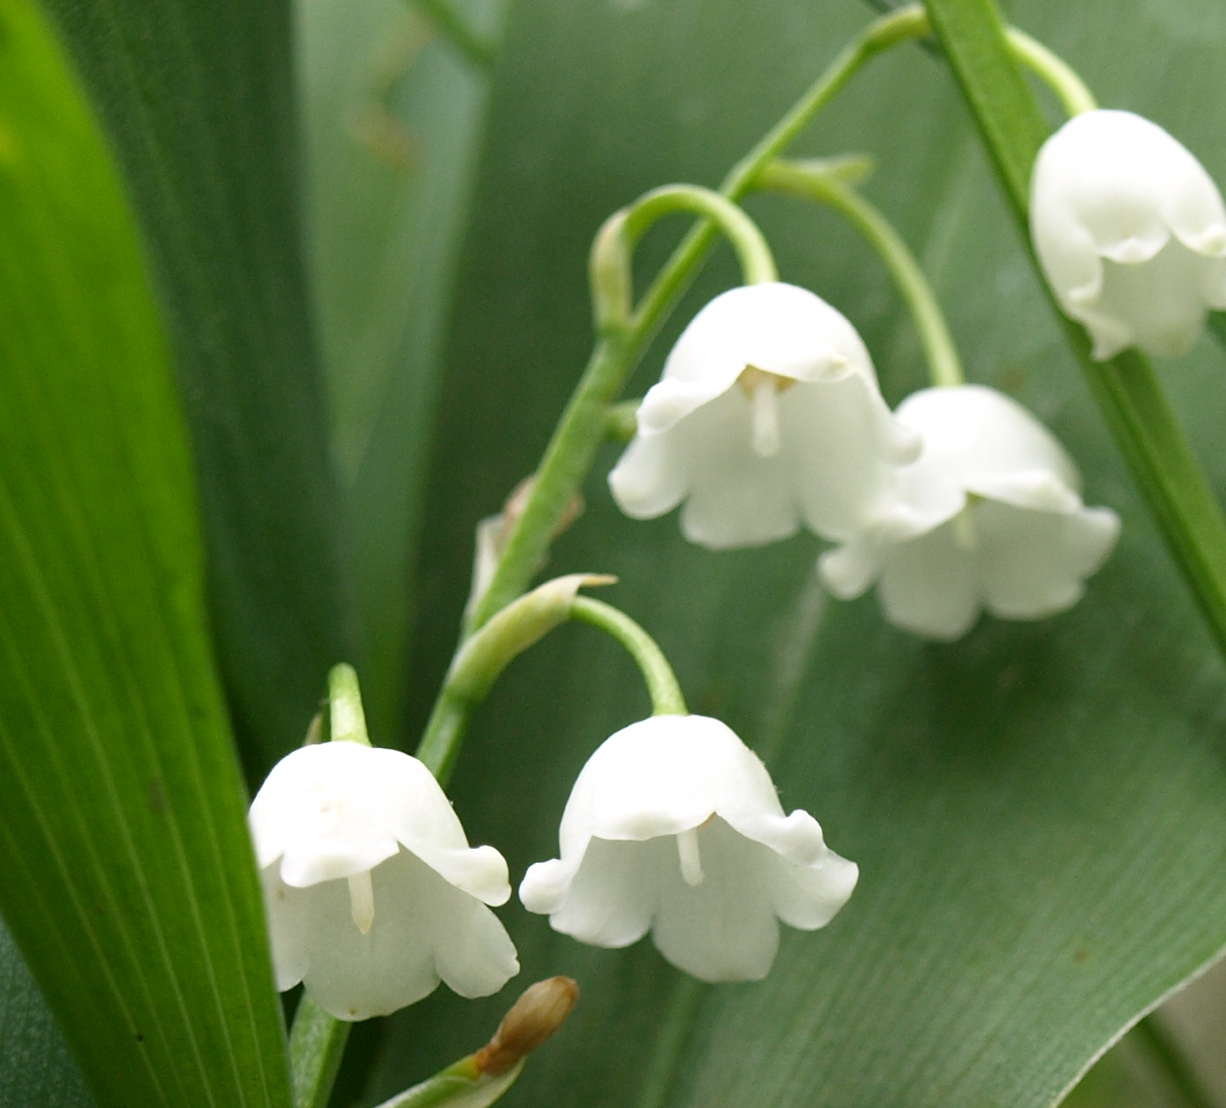 lily-of-the-valley-0420160101.jpg